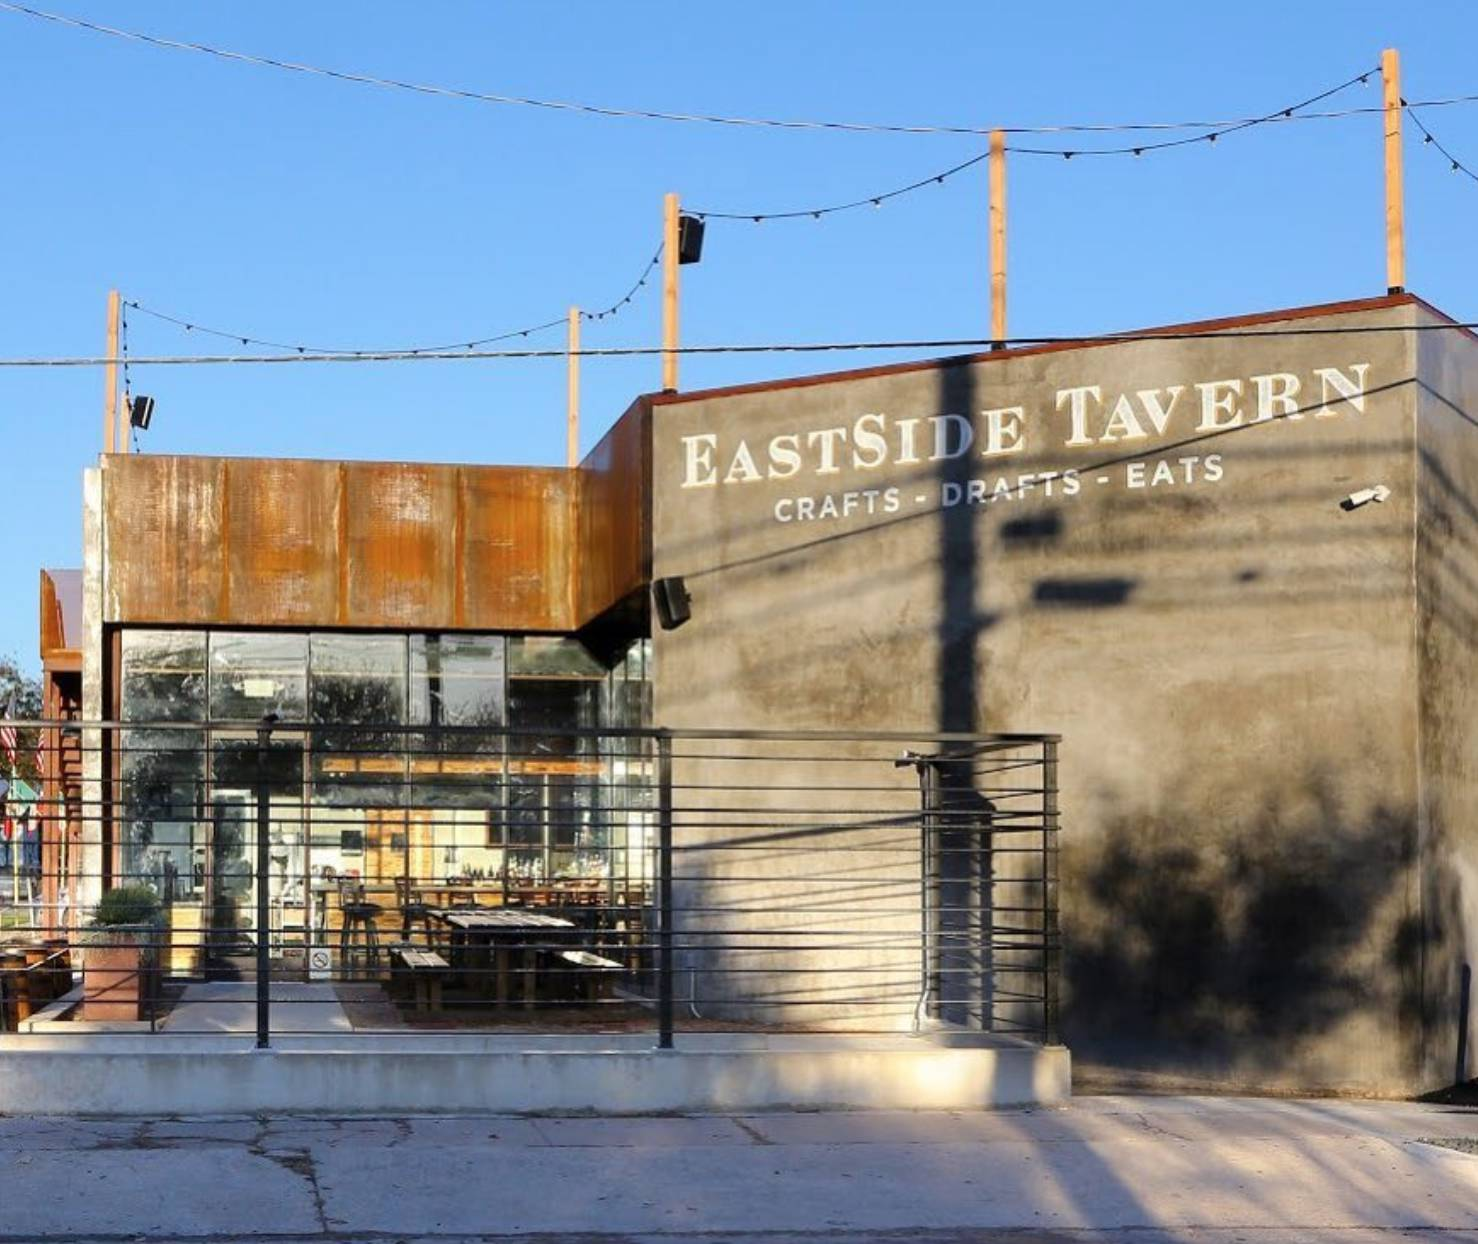 EastSide Tavern